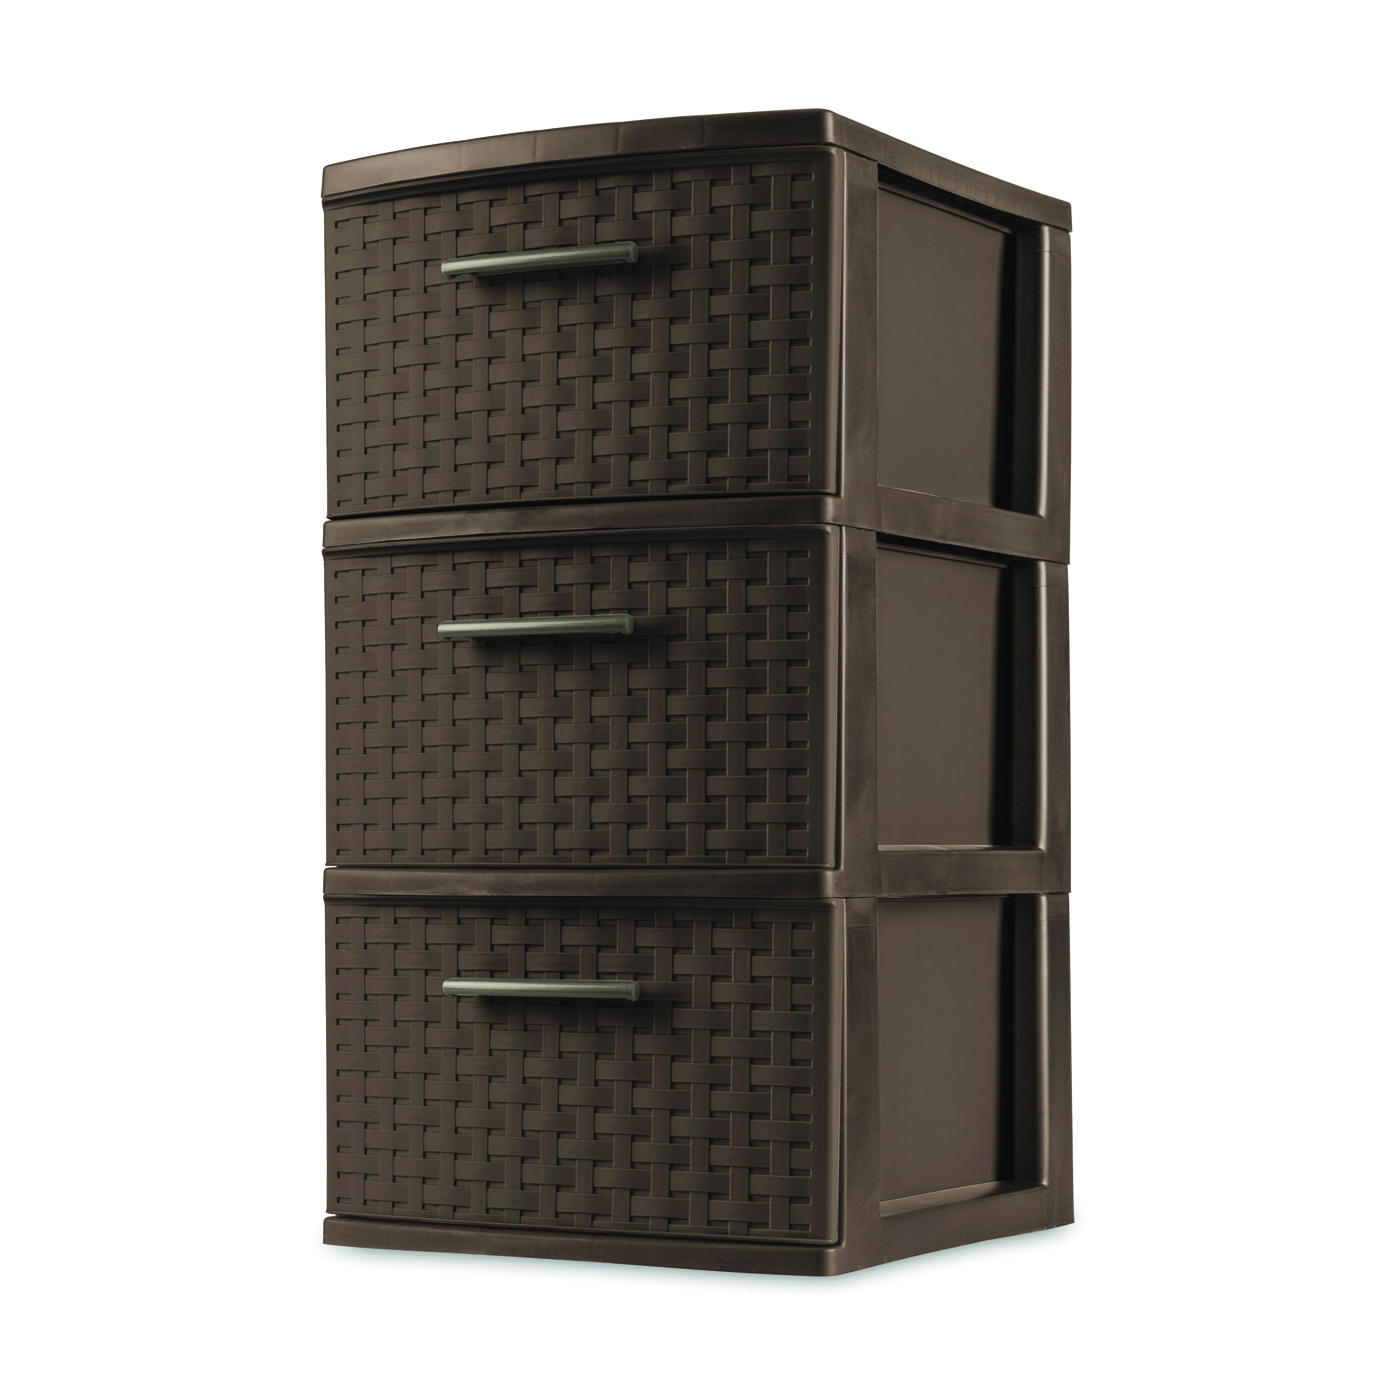 Picture of Sterilite 26306P02 Drawer Tower, 3-Drawer, Plastic Drawer, Espresso Drawer, 15 in OAL, 12-5/8 in OAW, 24 in OAD